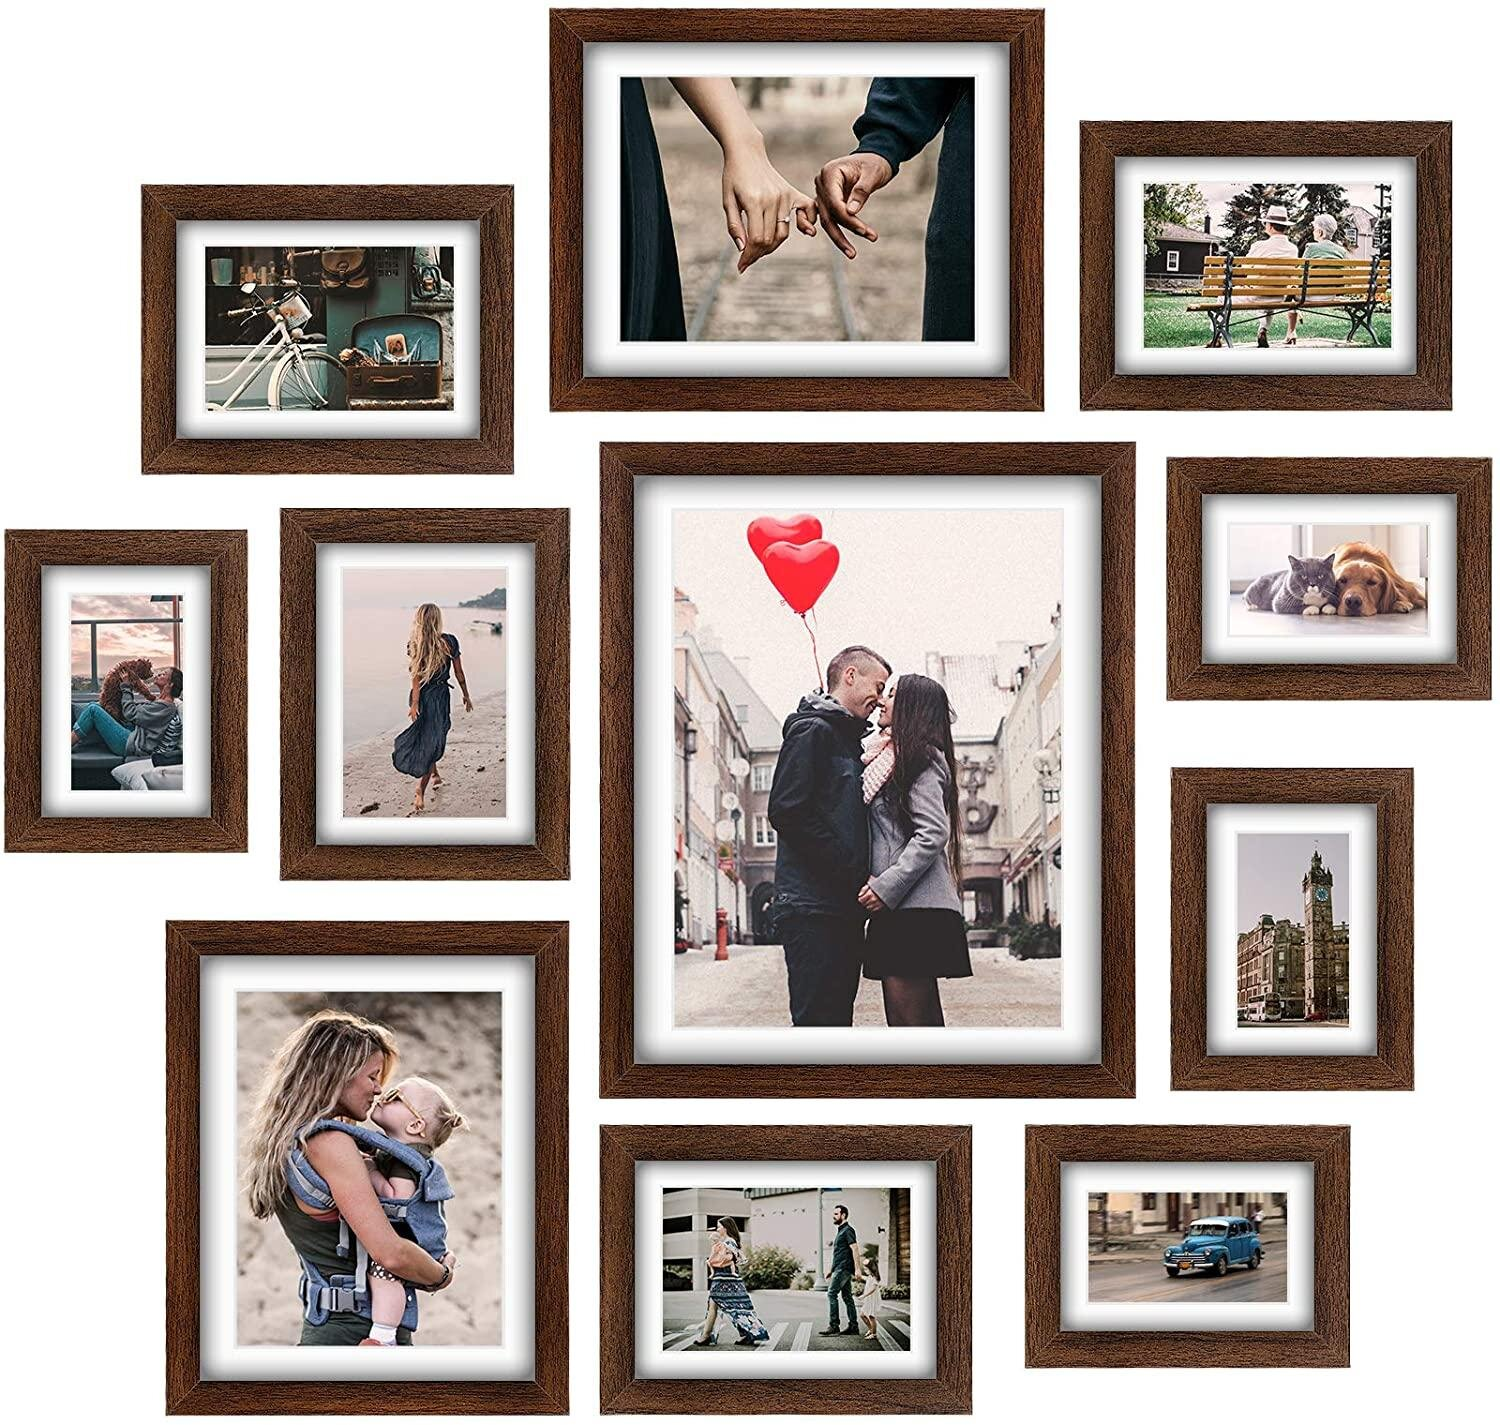 Picture Frames Collage Set   20 Pcs Rustic Wooden Photo Frame Gallery Wall  Frame Set For Tabletop Or Home Decor With Mat   Four 20X20 In  Four 20X20 In   ...